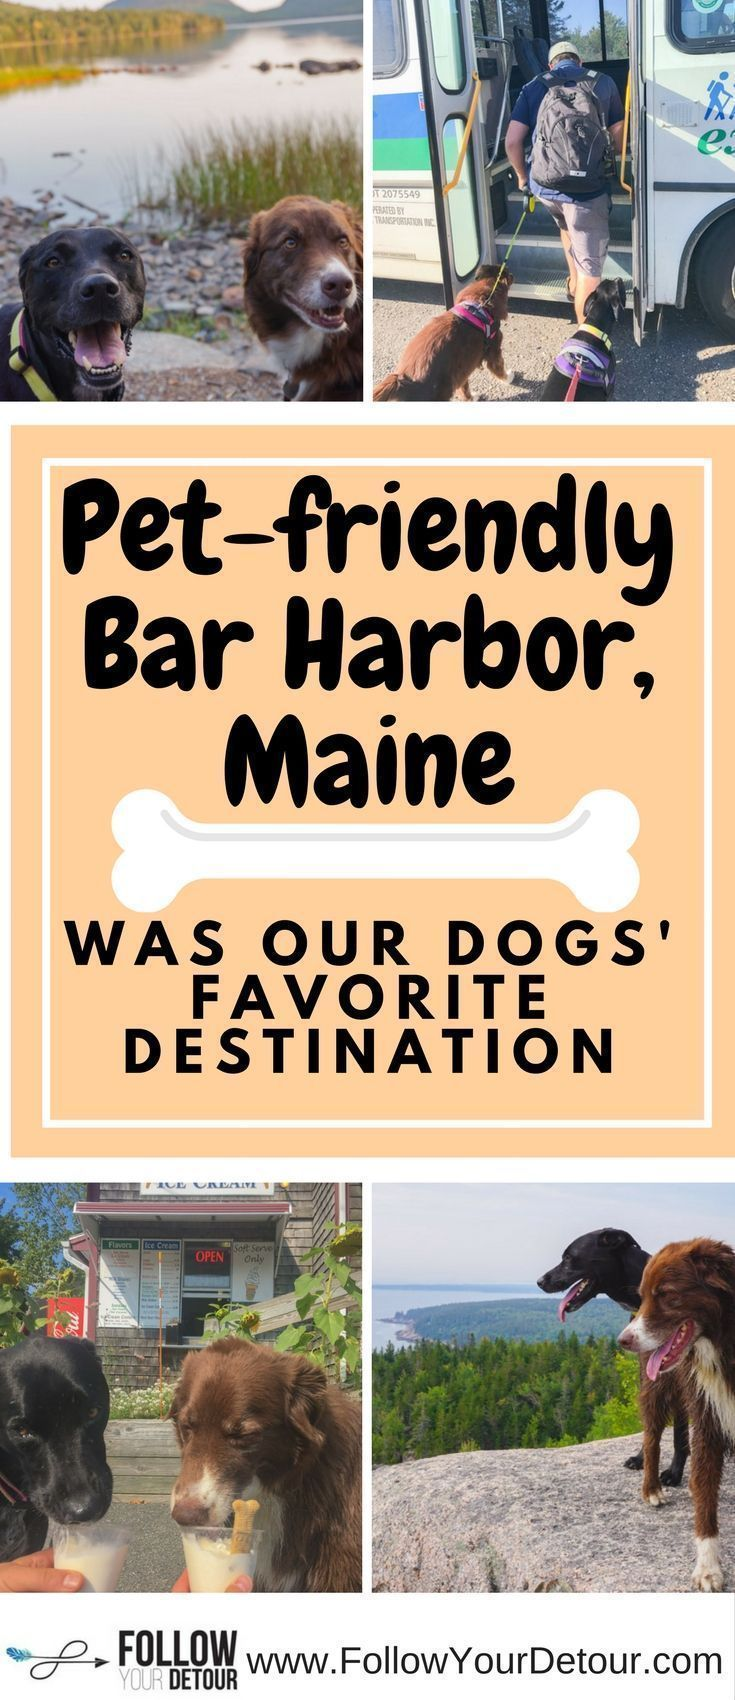 Take your dogs on vacation to Bar Harbor, Maine and they will love you forever! They are allowed on city buses, boats, and in many restaurants! Bar Harbor is very pet friendly. Our dogs love RV living and camping and its extra special finding #petfriendly #rvvacation